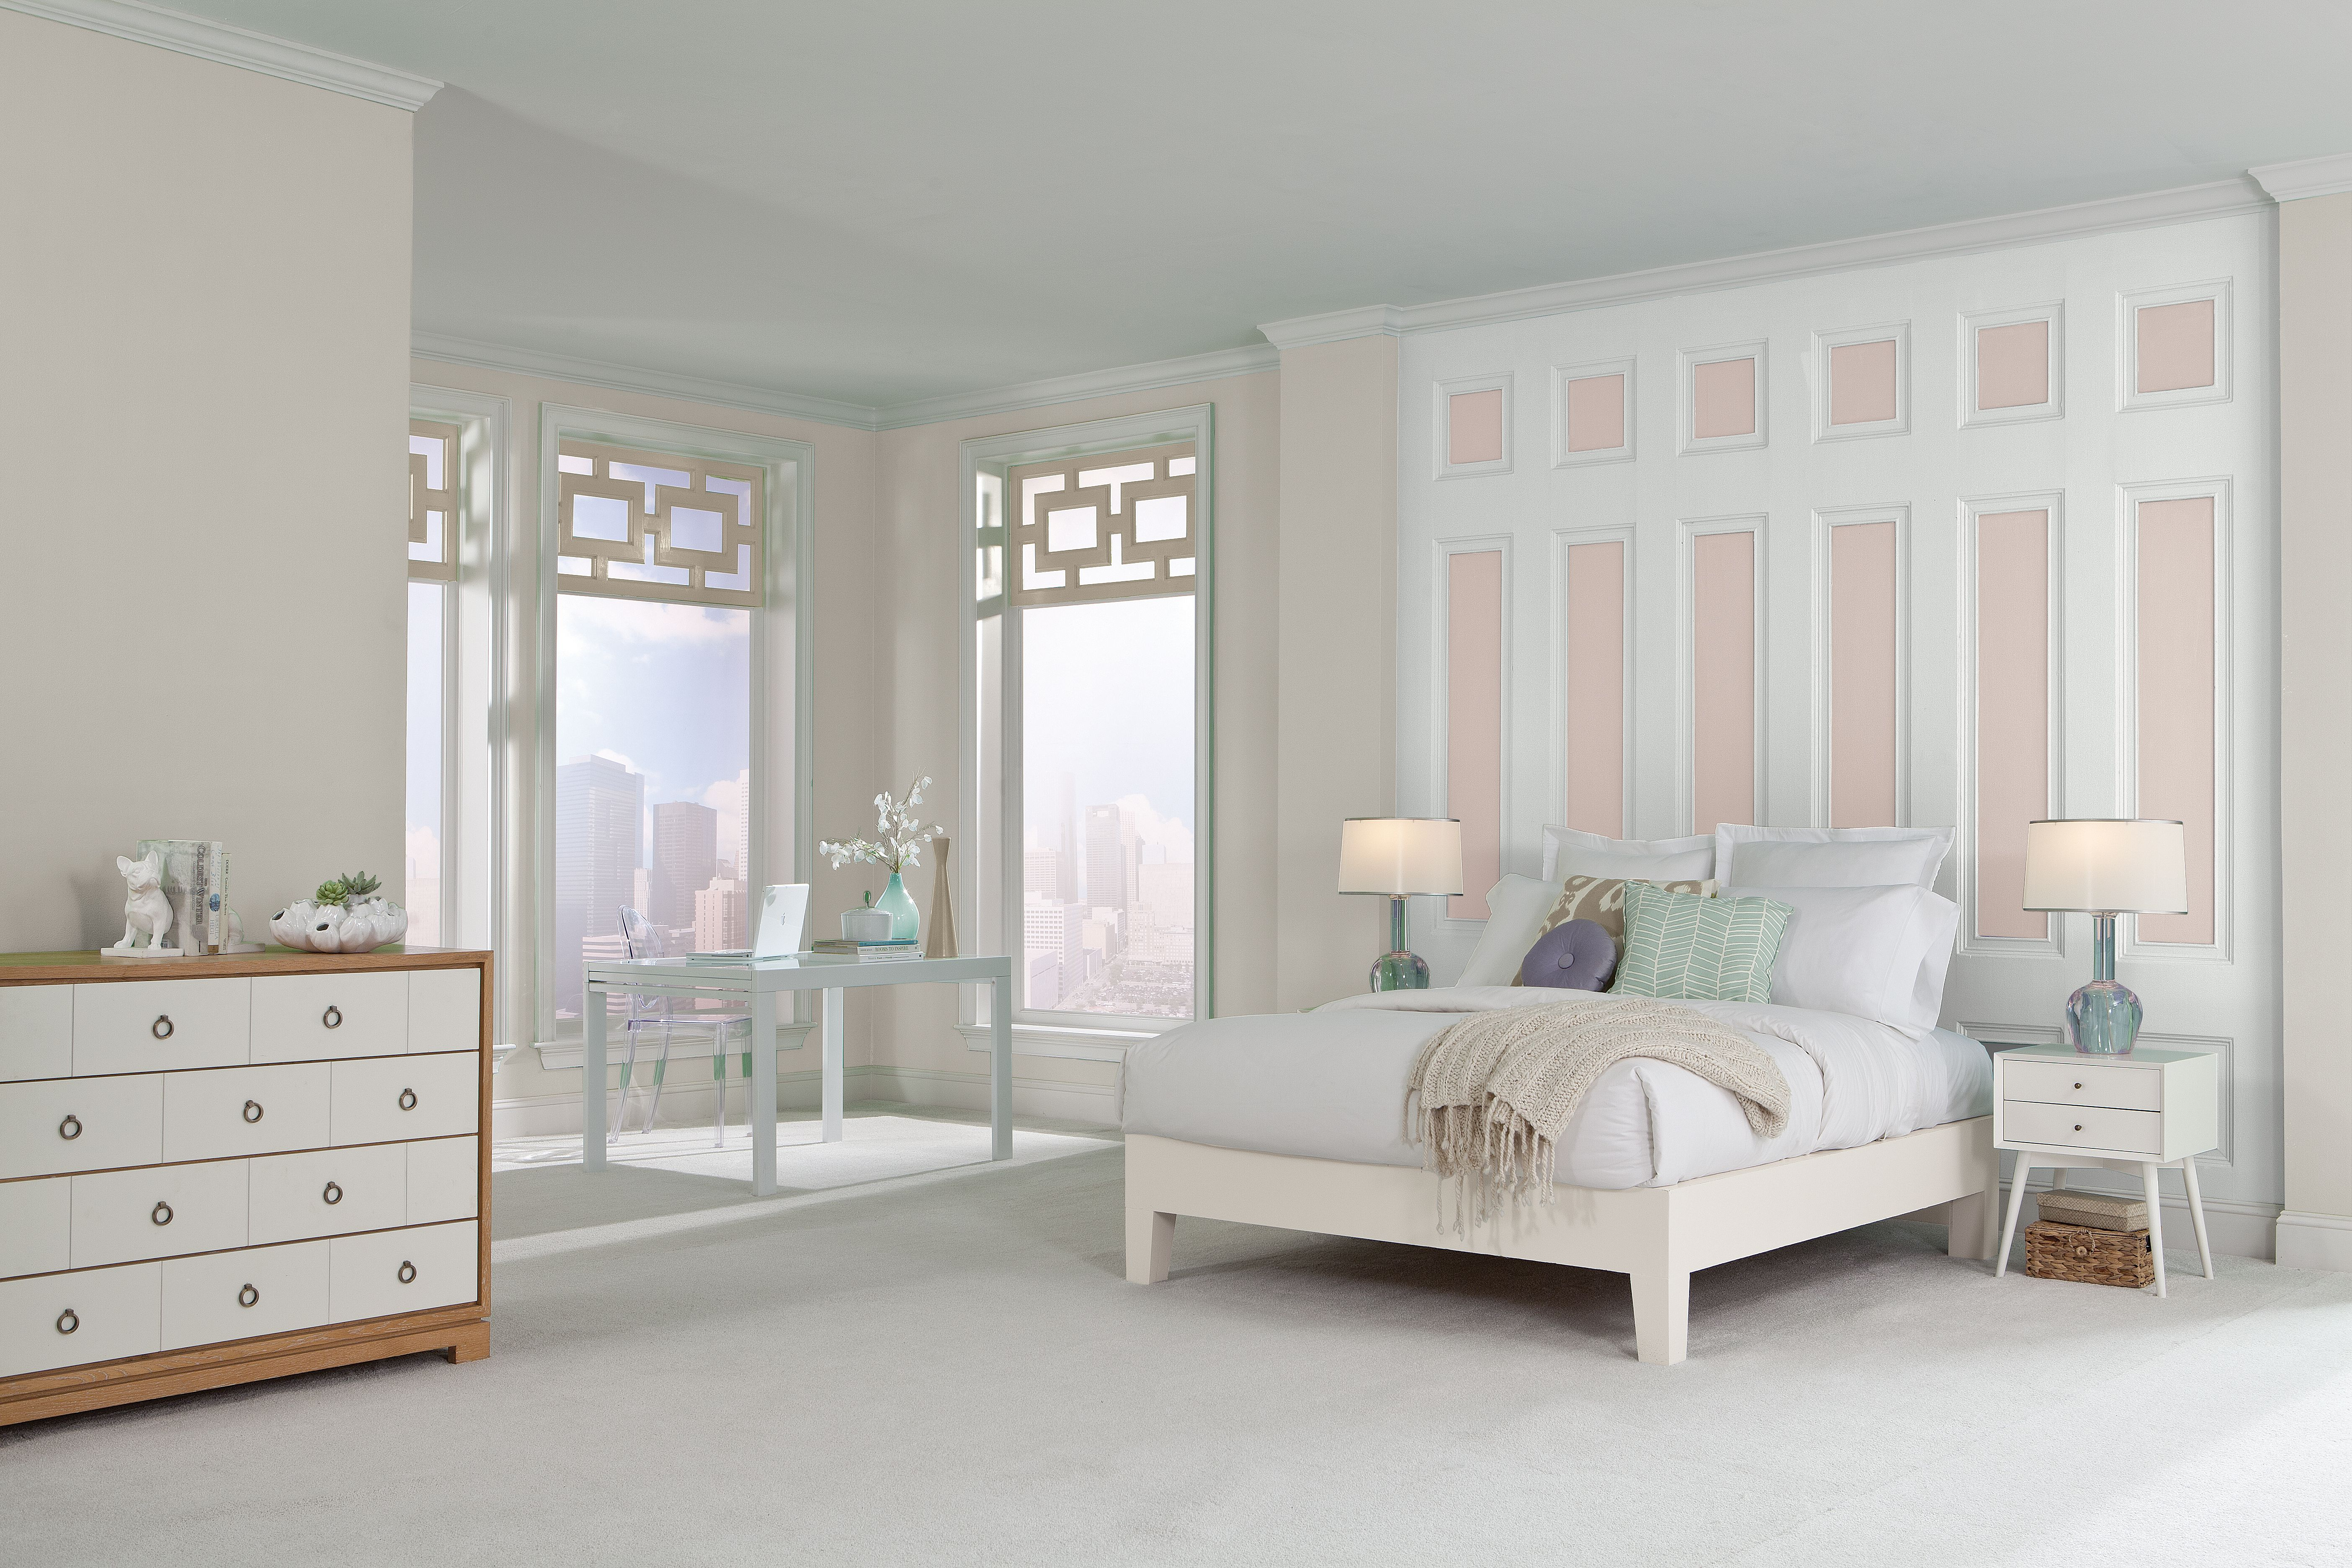 10 Beautiful Colors for a Little Girl's Room on Girls Beautiful Room  id=45830